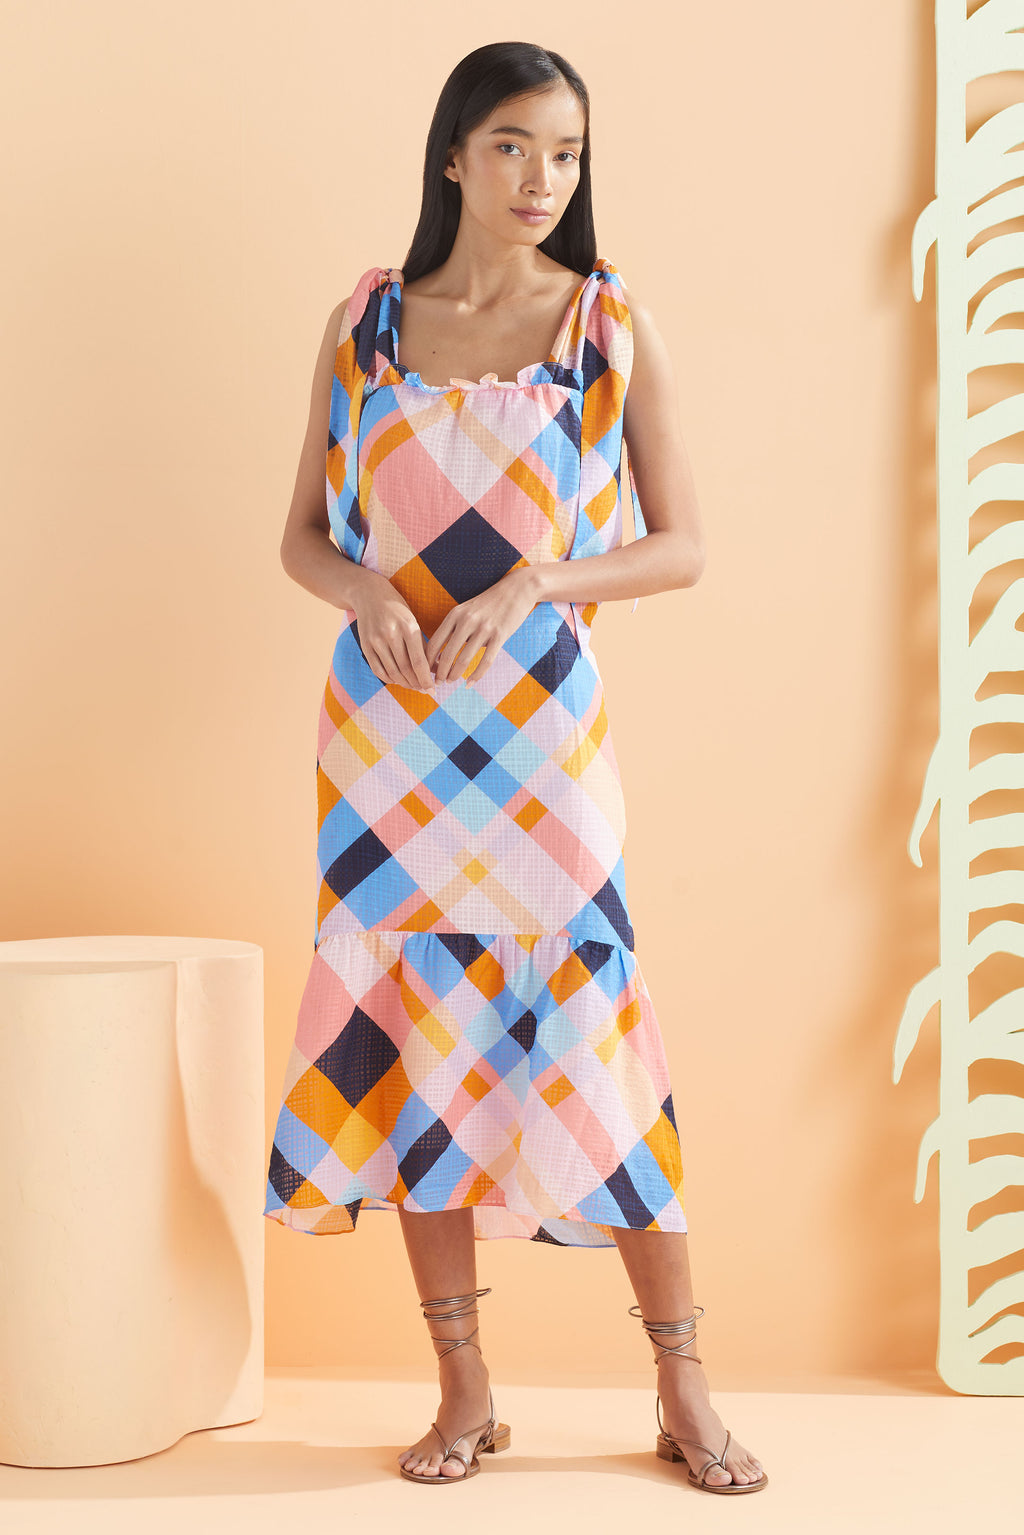 Midi sleeveless dress with hints of blue, pink, and orange.